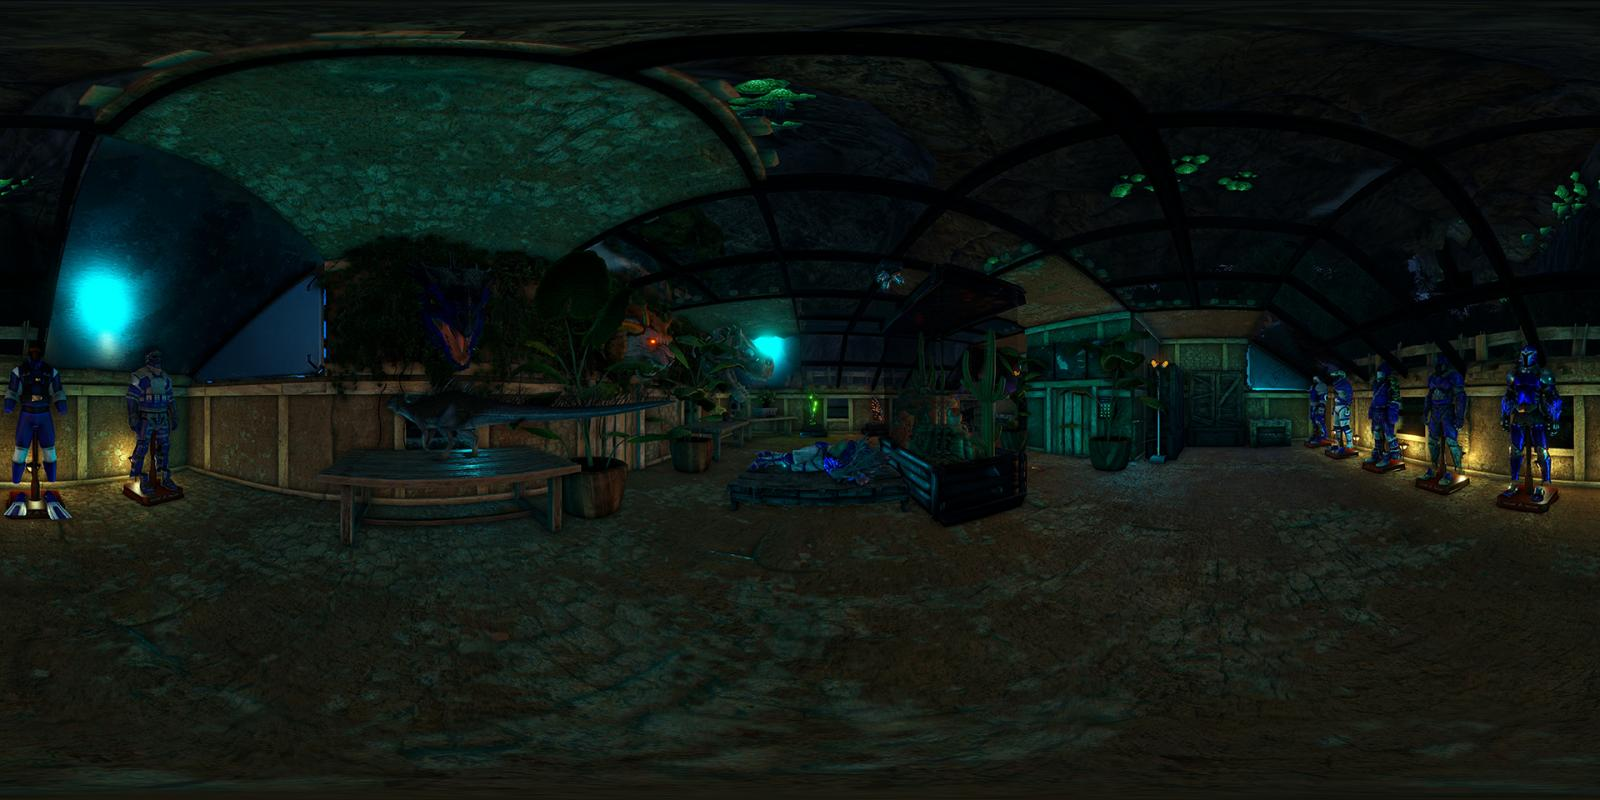 large.59f3d6fa7dbc0_Vakarian-SleepatNight-Panoramic360Steroscopic3D.jpg